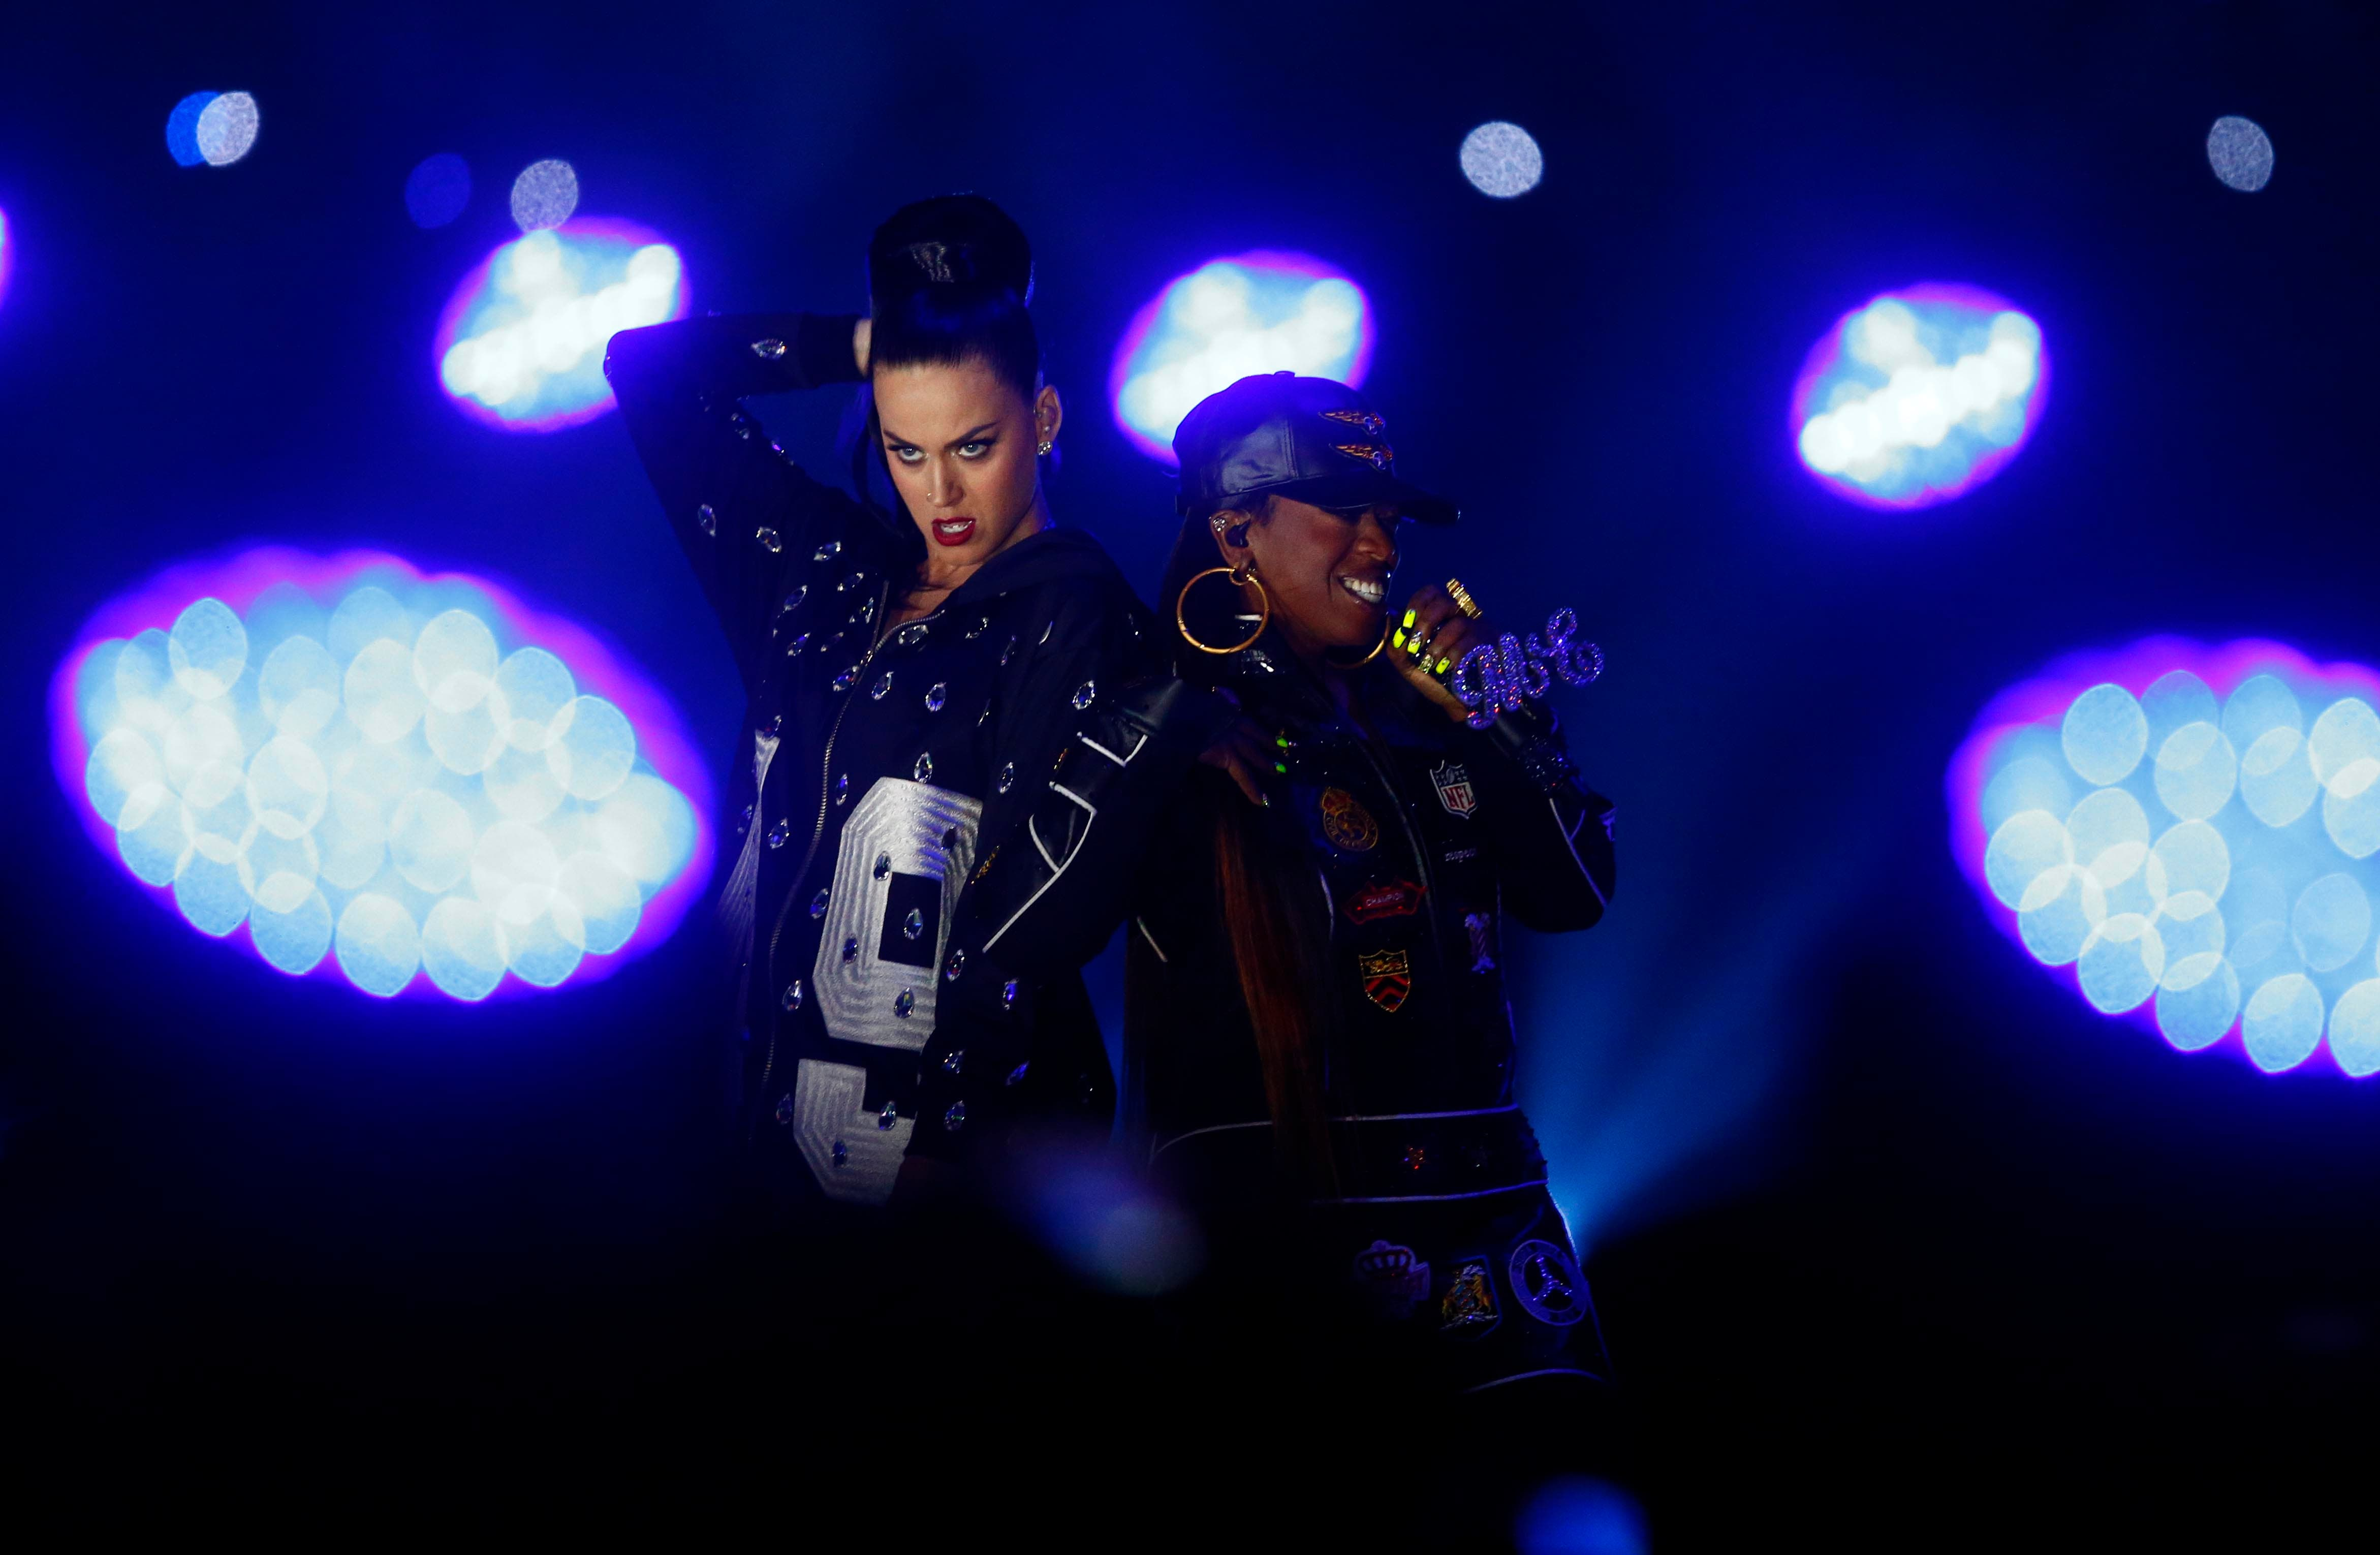 Recording artist Katy Perry performs at halftime with Missy Elliot in Super Bowl XLIX. (Reuter)